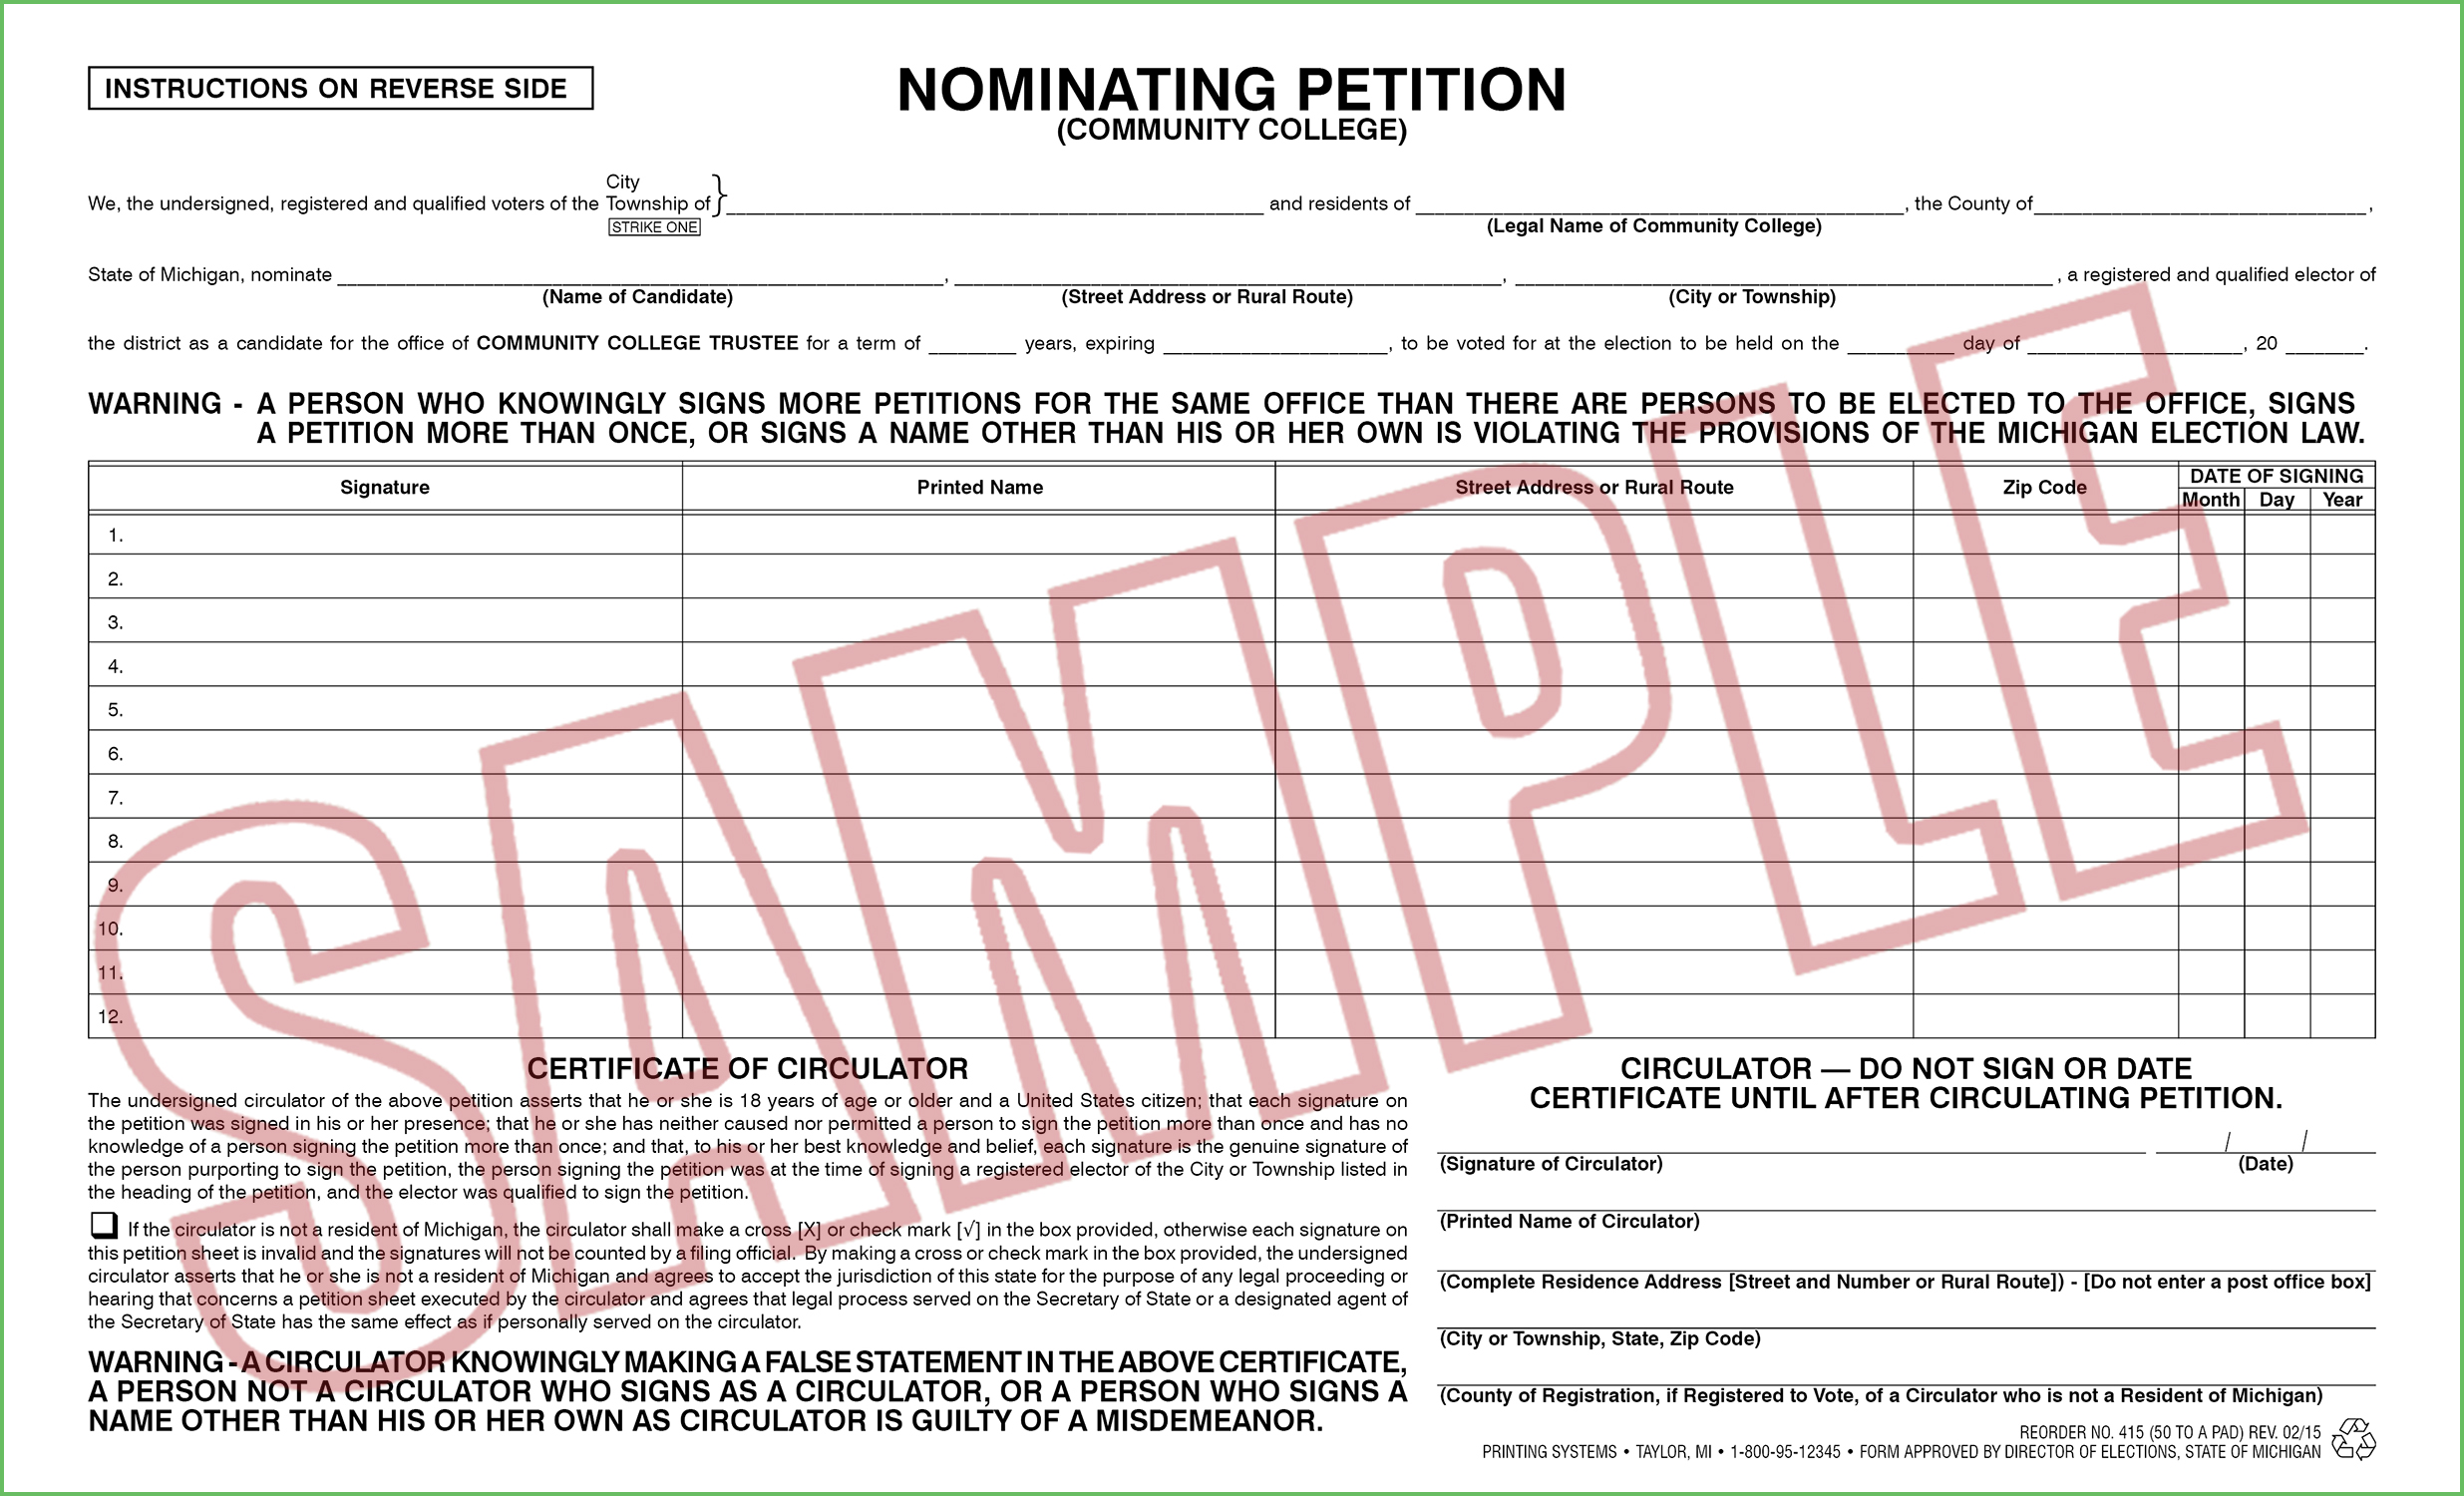 415 Nominating Petition (Community College) (50 per pad) Rev. 02/15